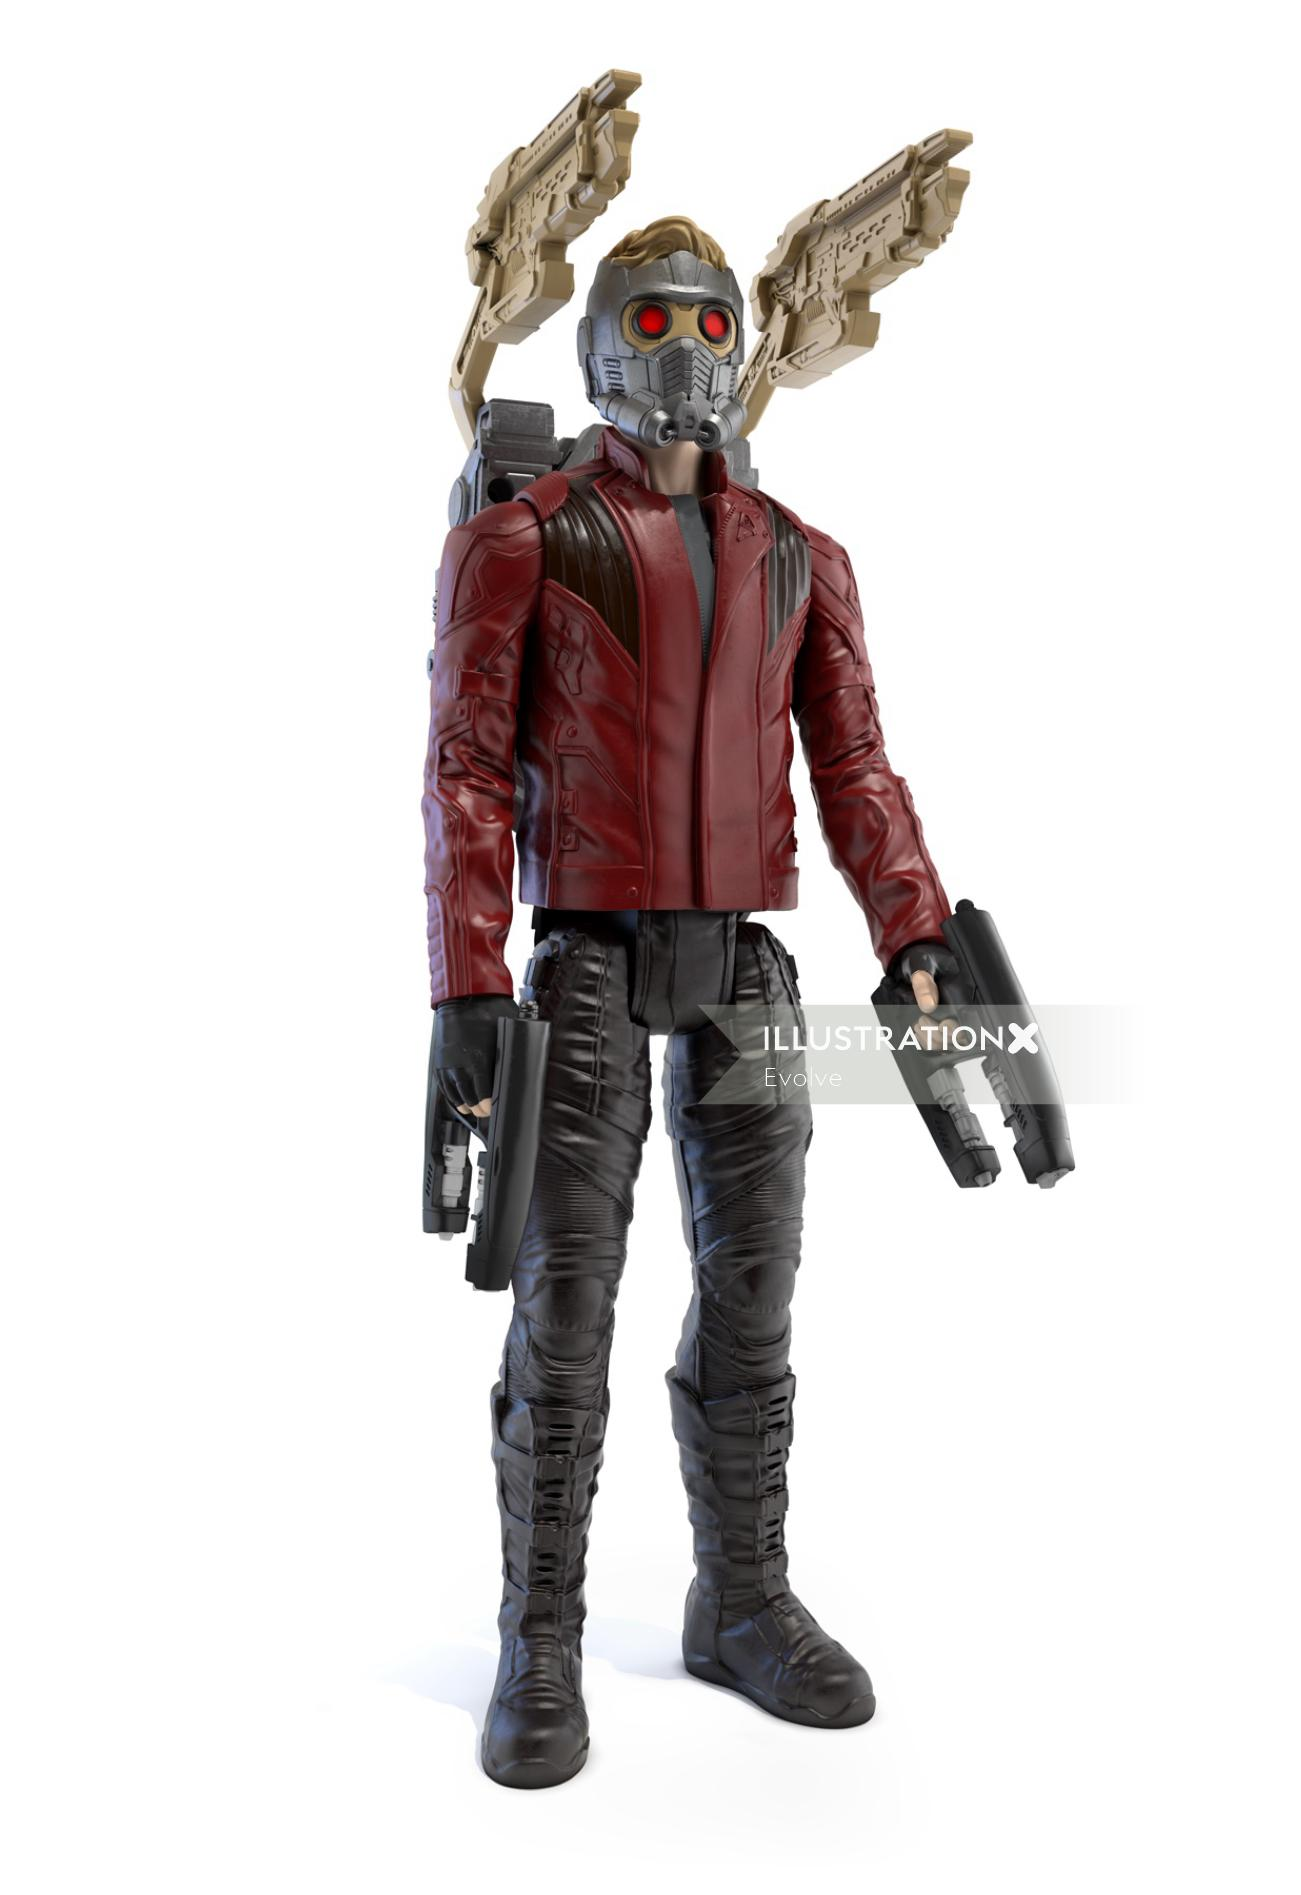 Star Lord character figure for Avengers